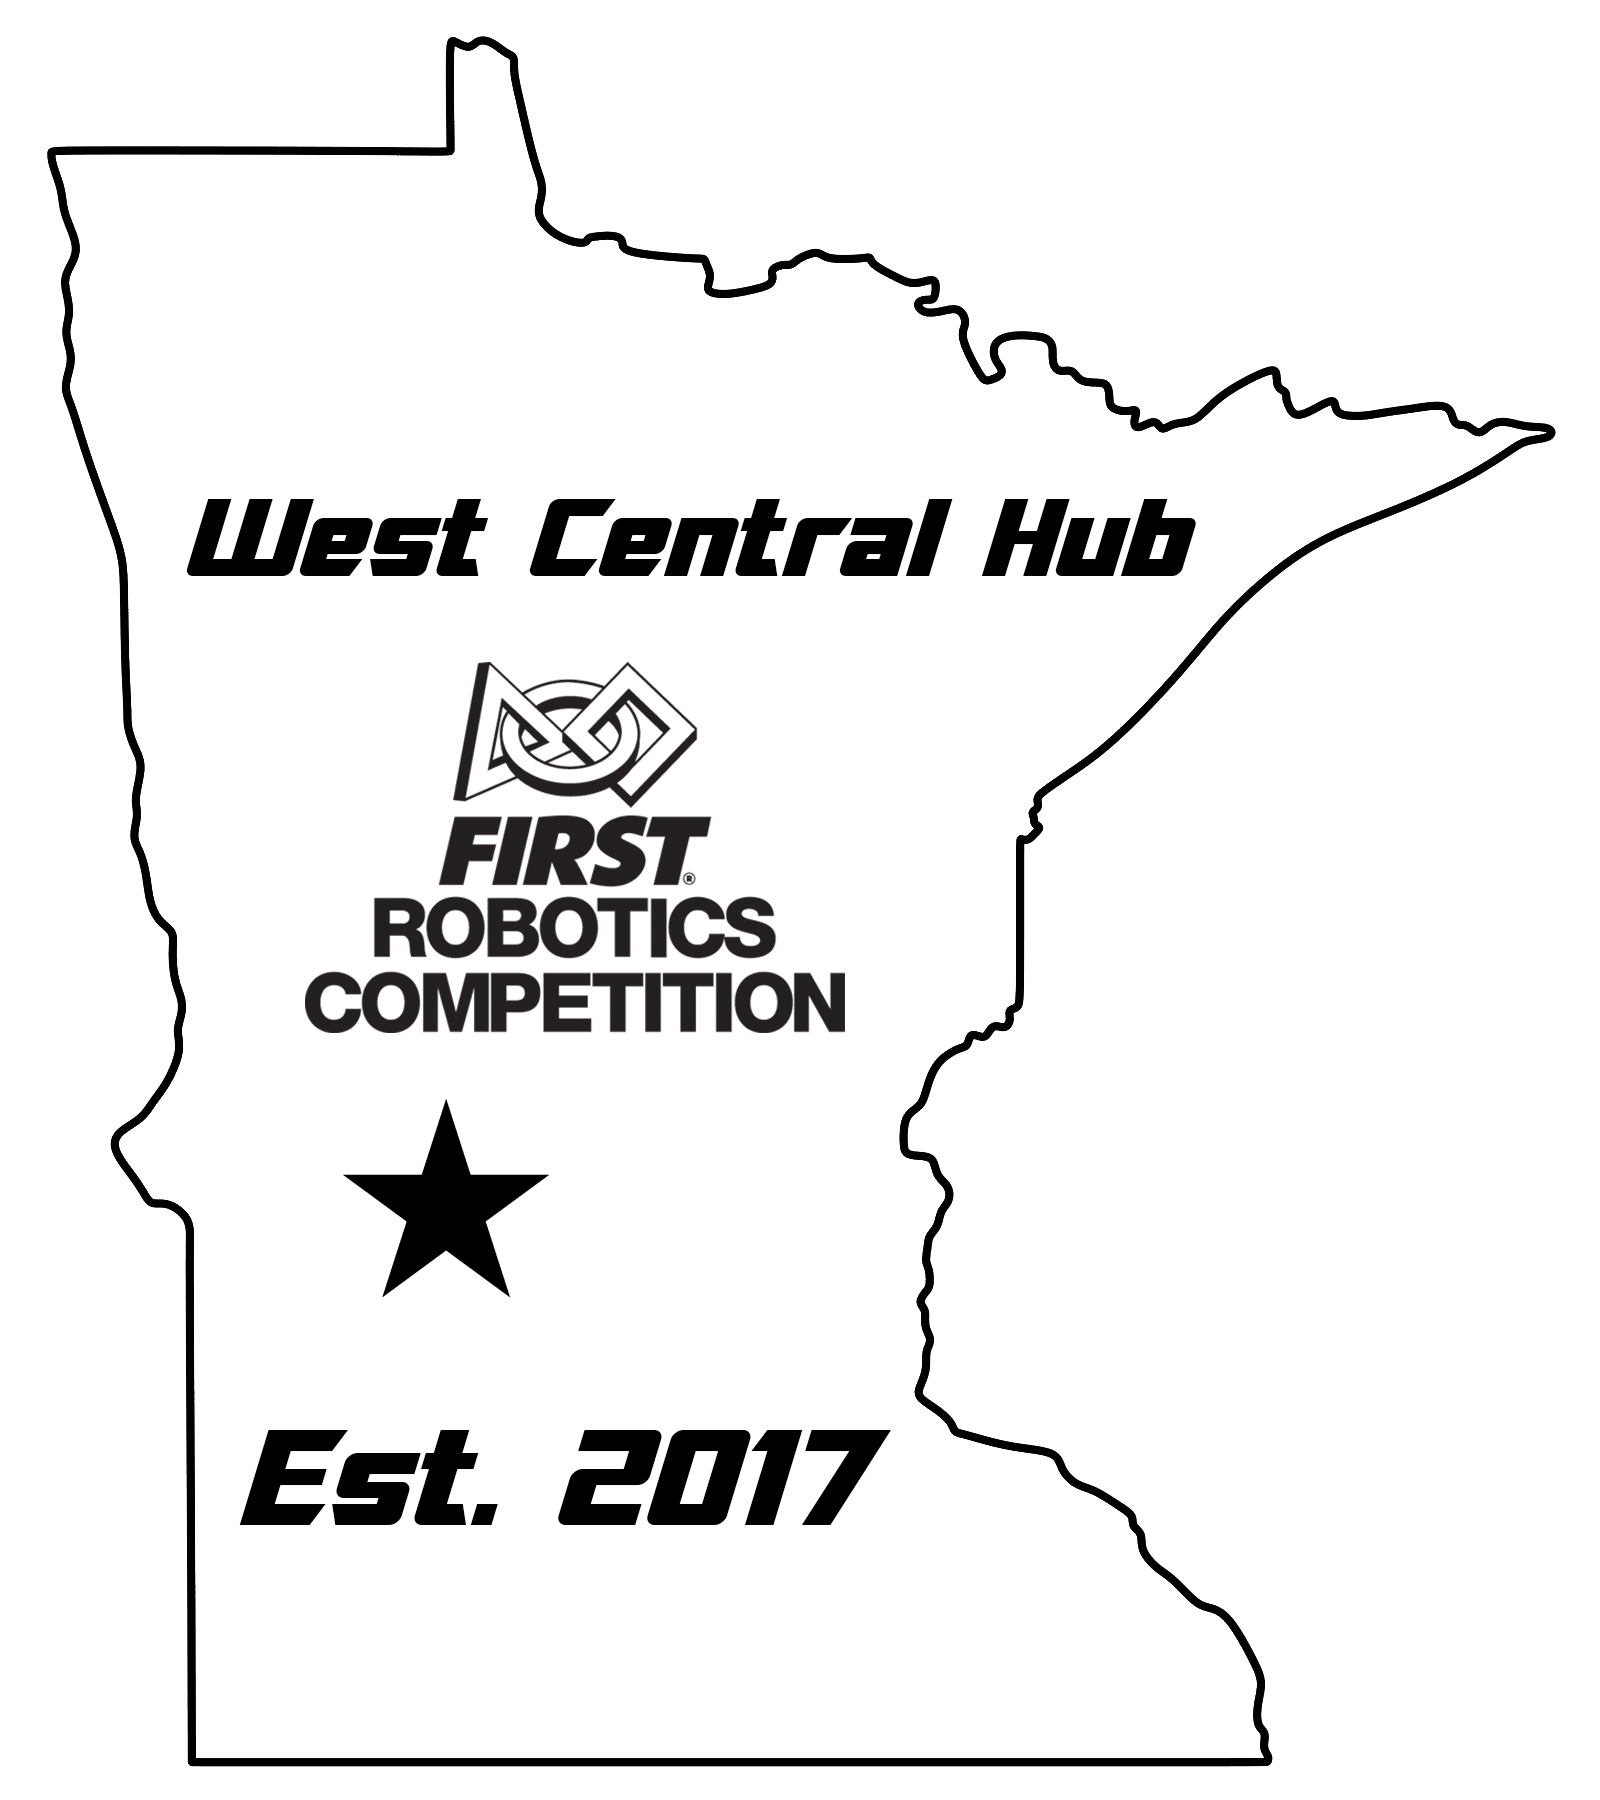 West Central Hub